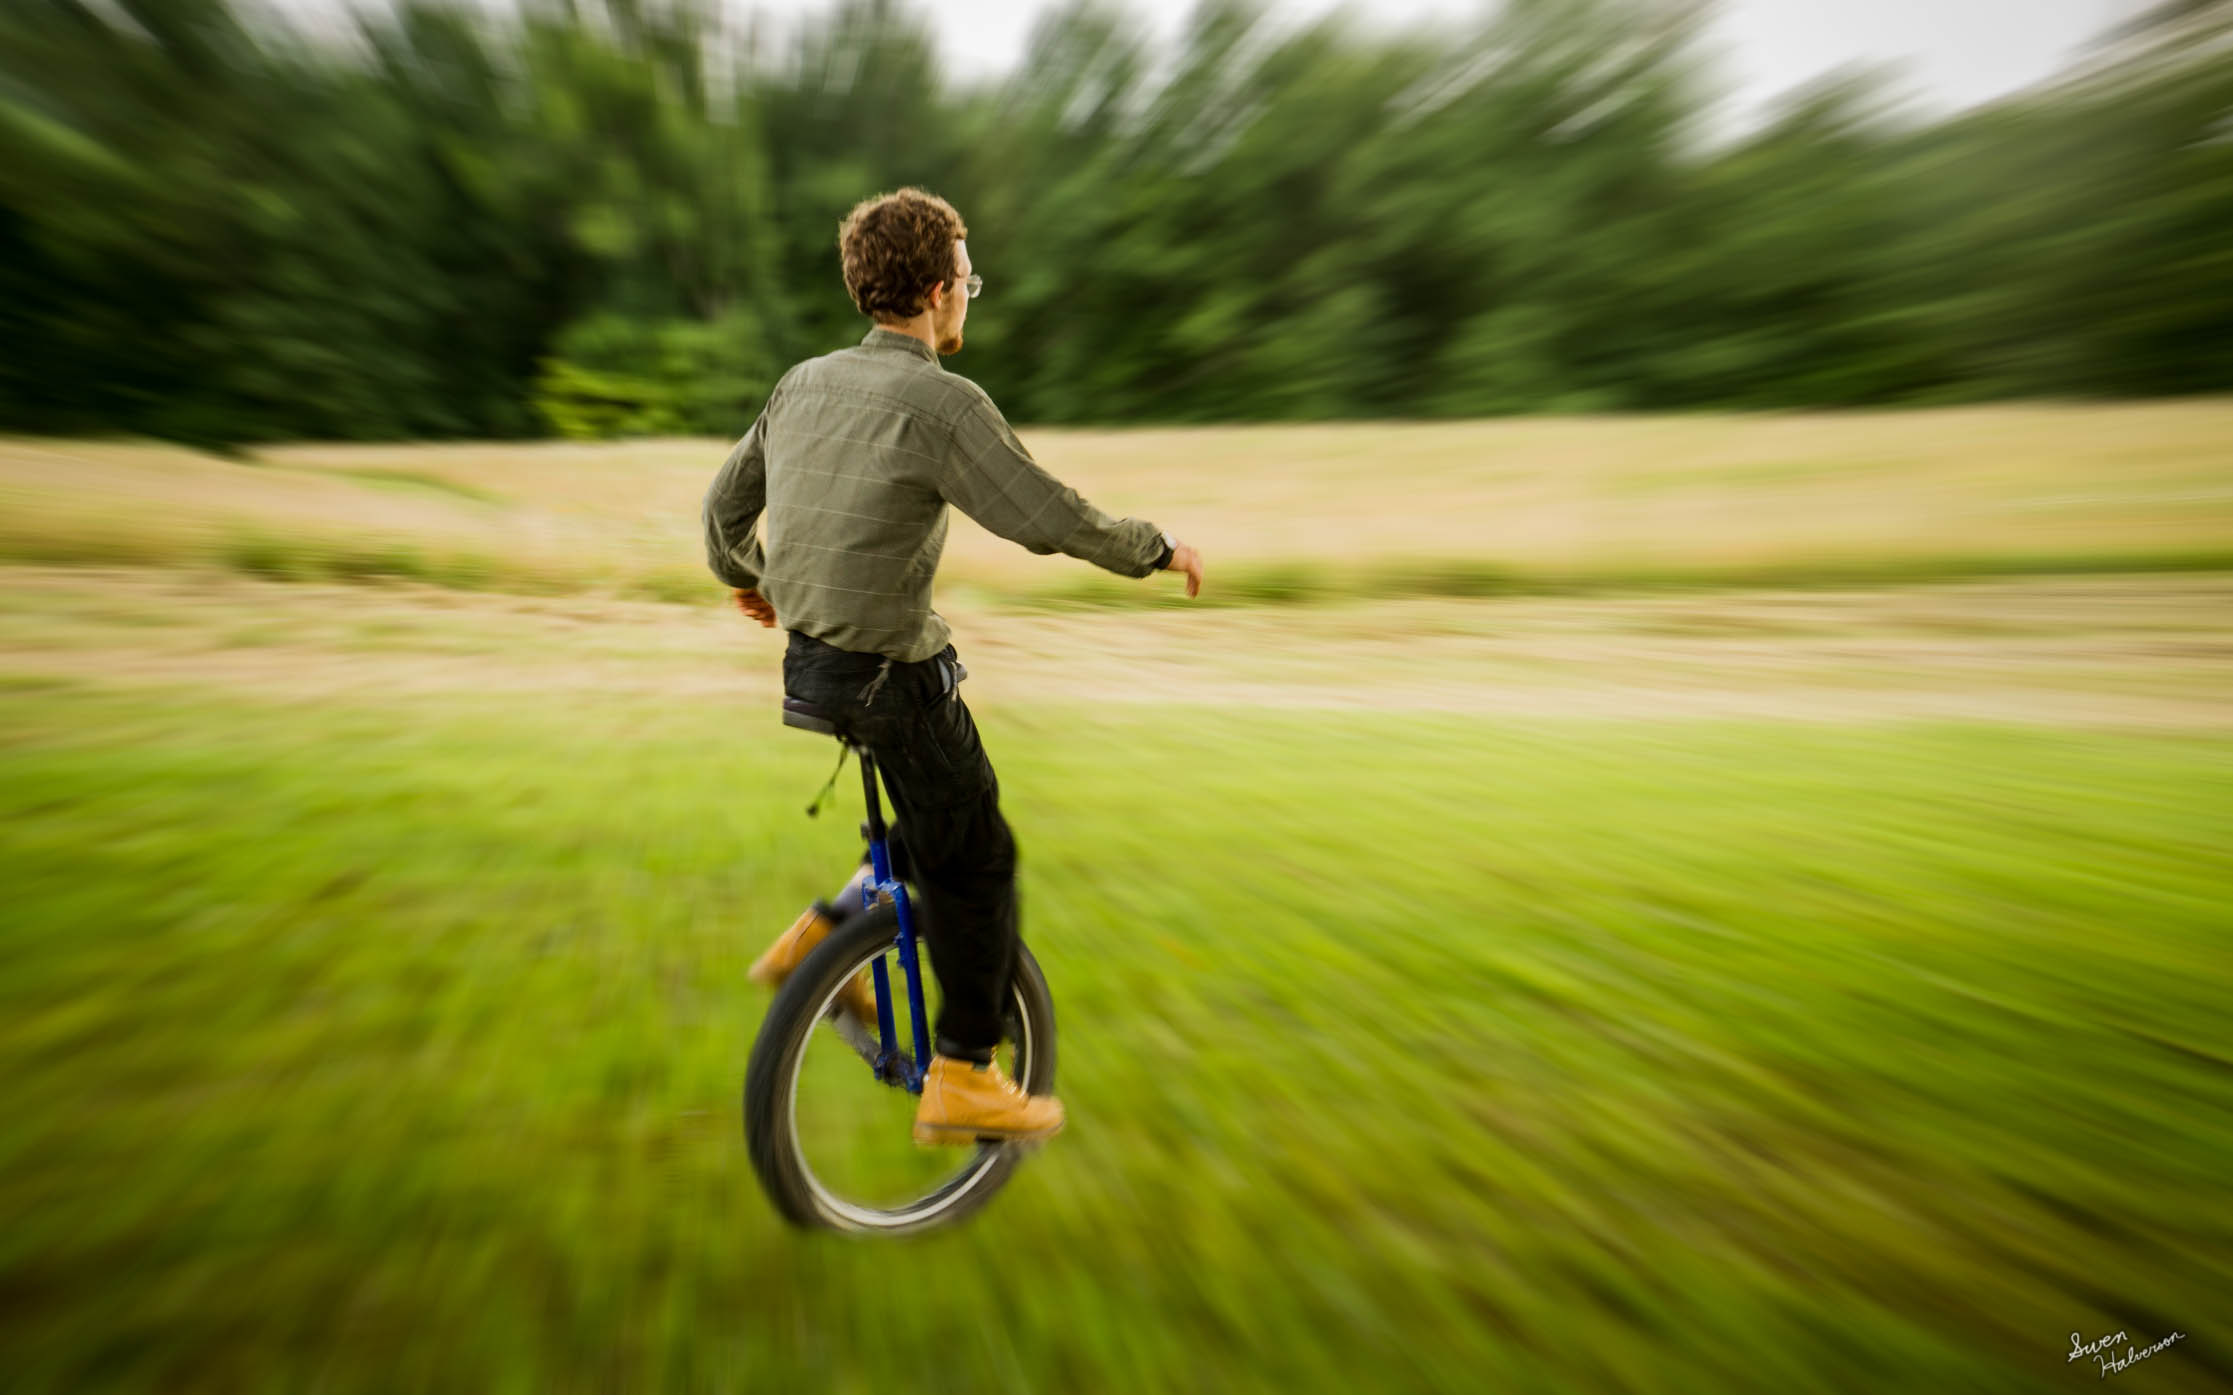 Theme: Rolling | TItle: Unicycling